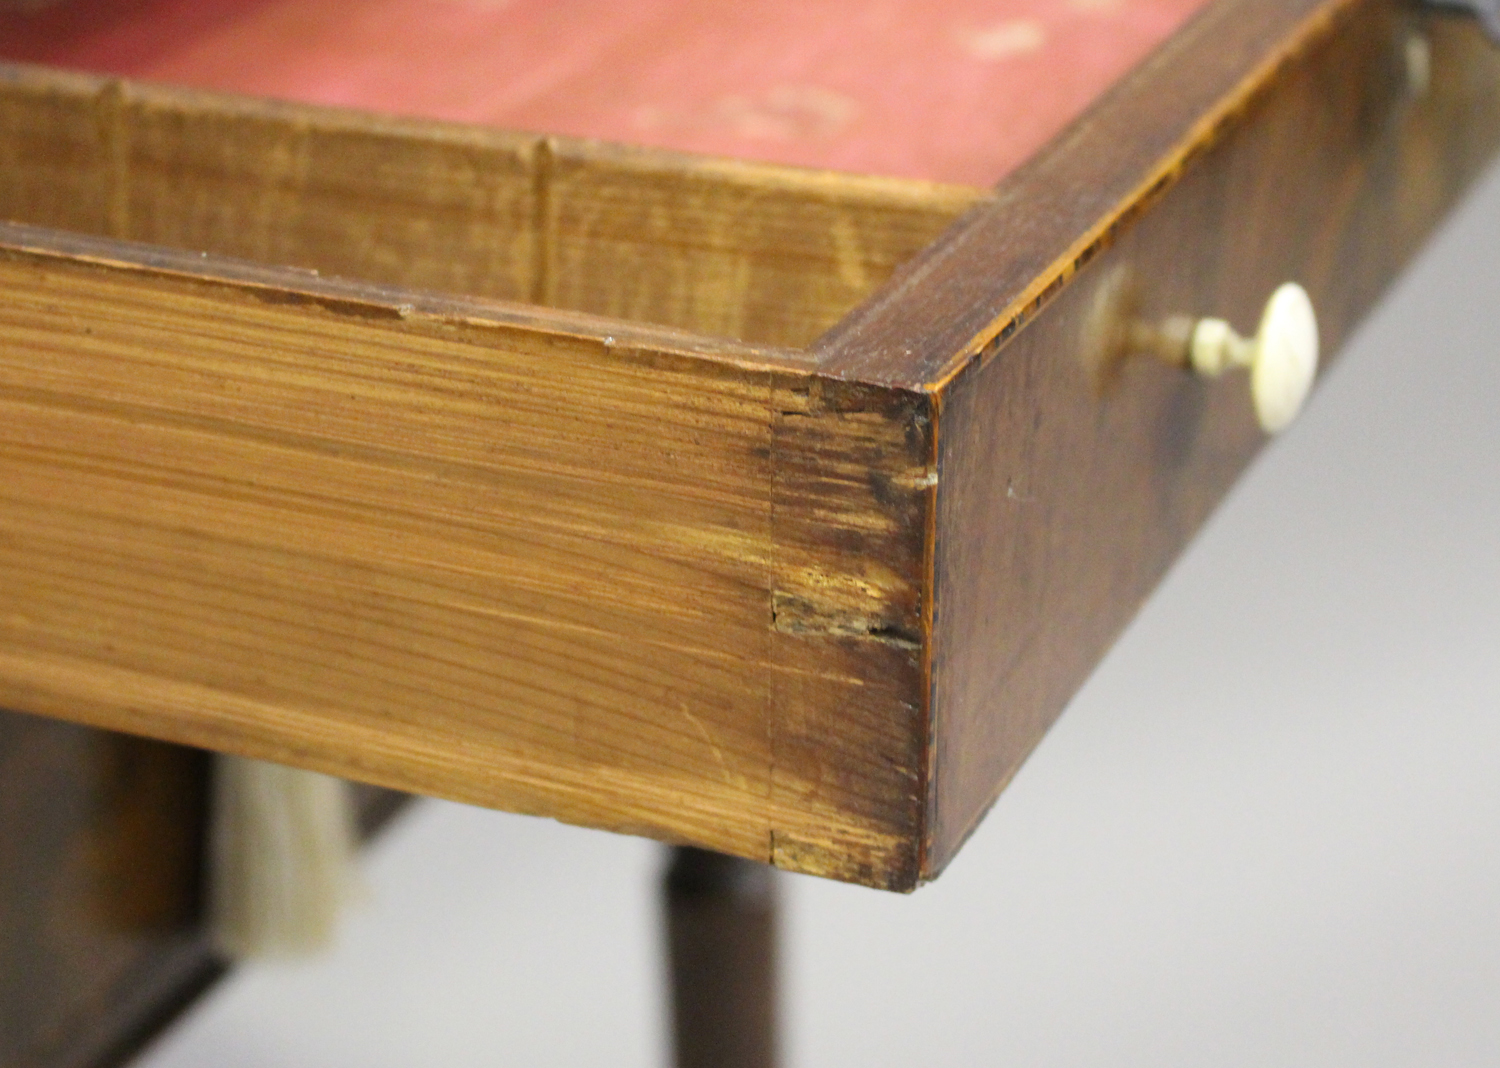 A George IV figured mahogany side table with projecting corners, the two drawers with bone handles - Image 6 of 8